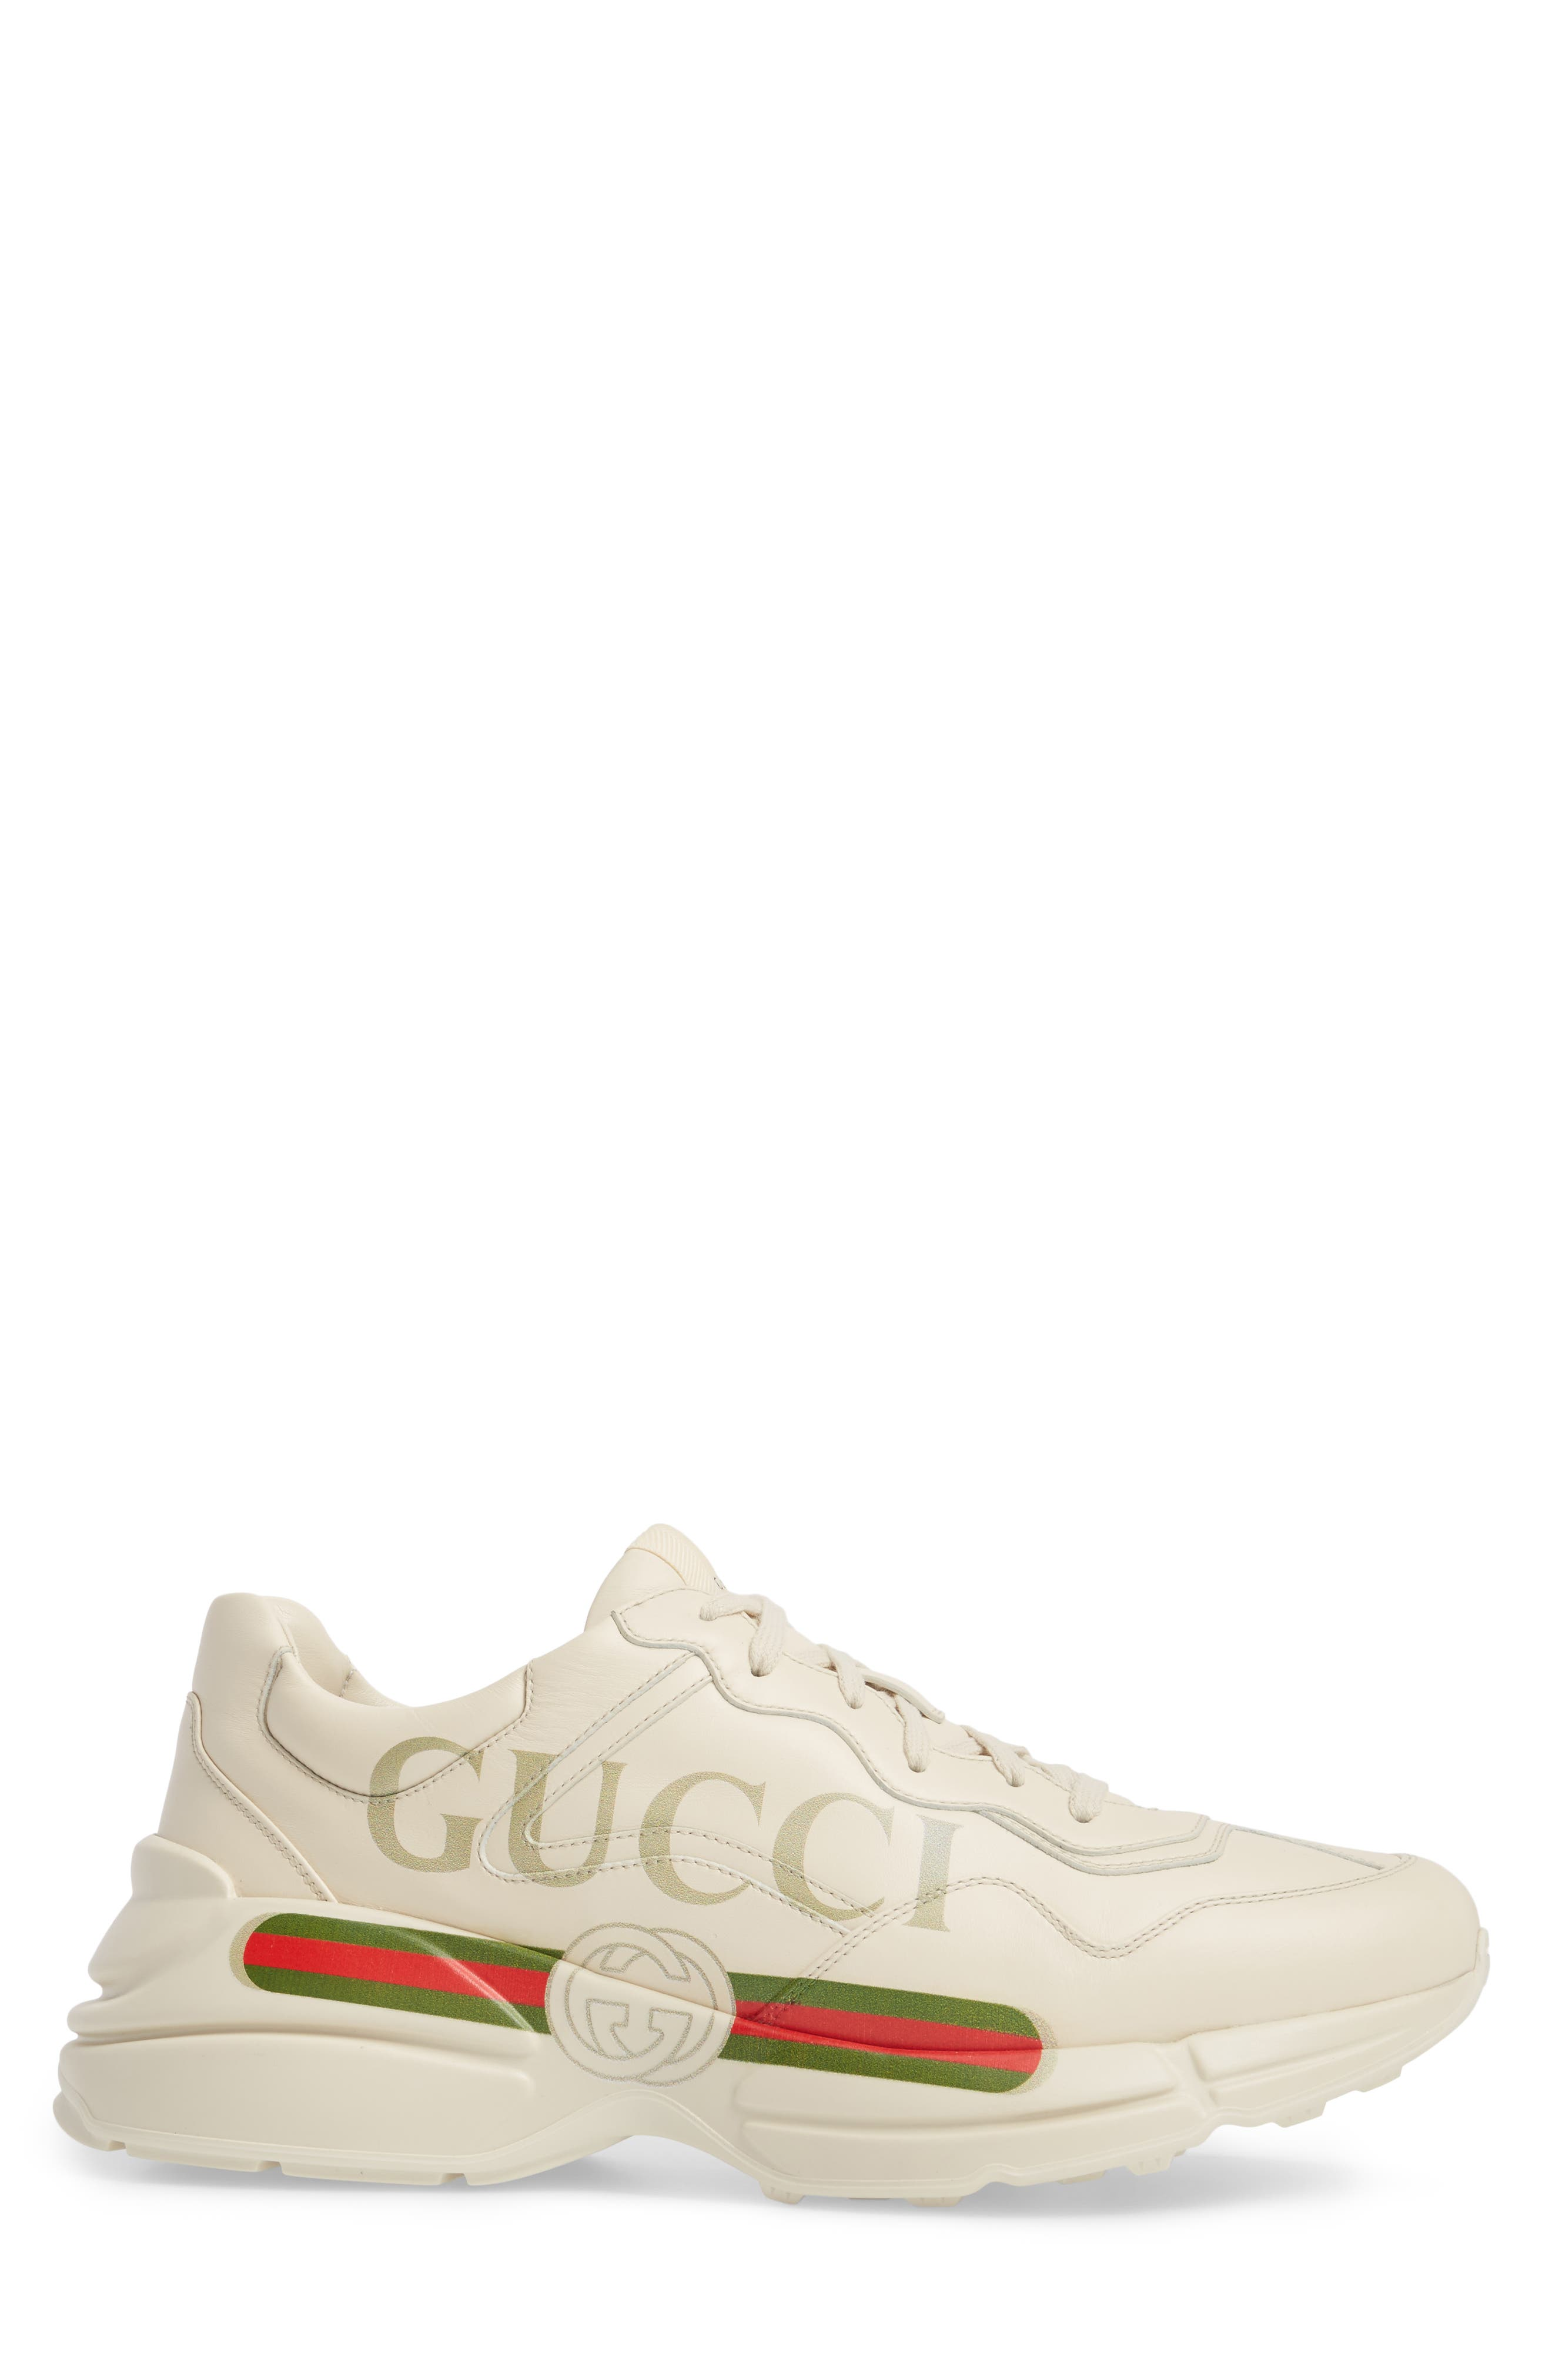 Alternate Image 3  - Gucci Rhyton Sneaker (Men)